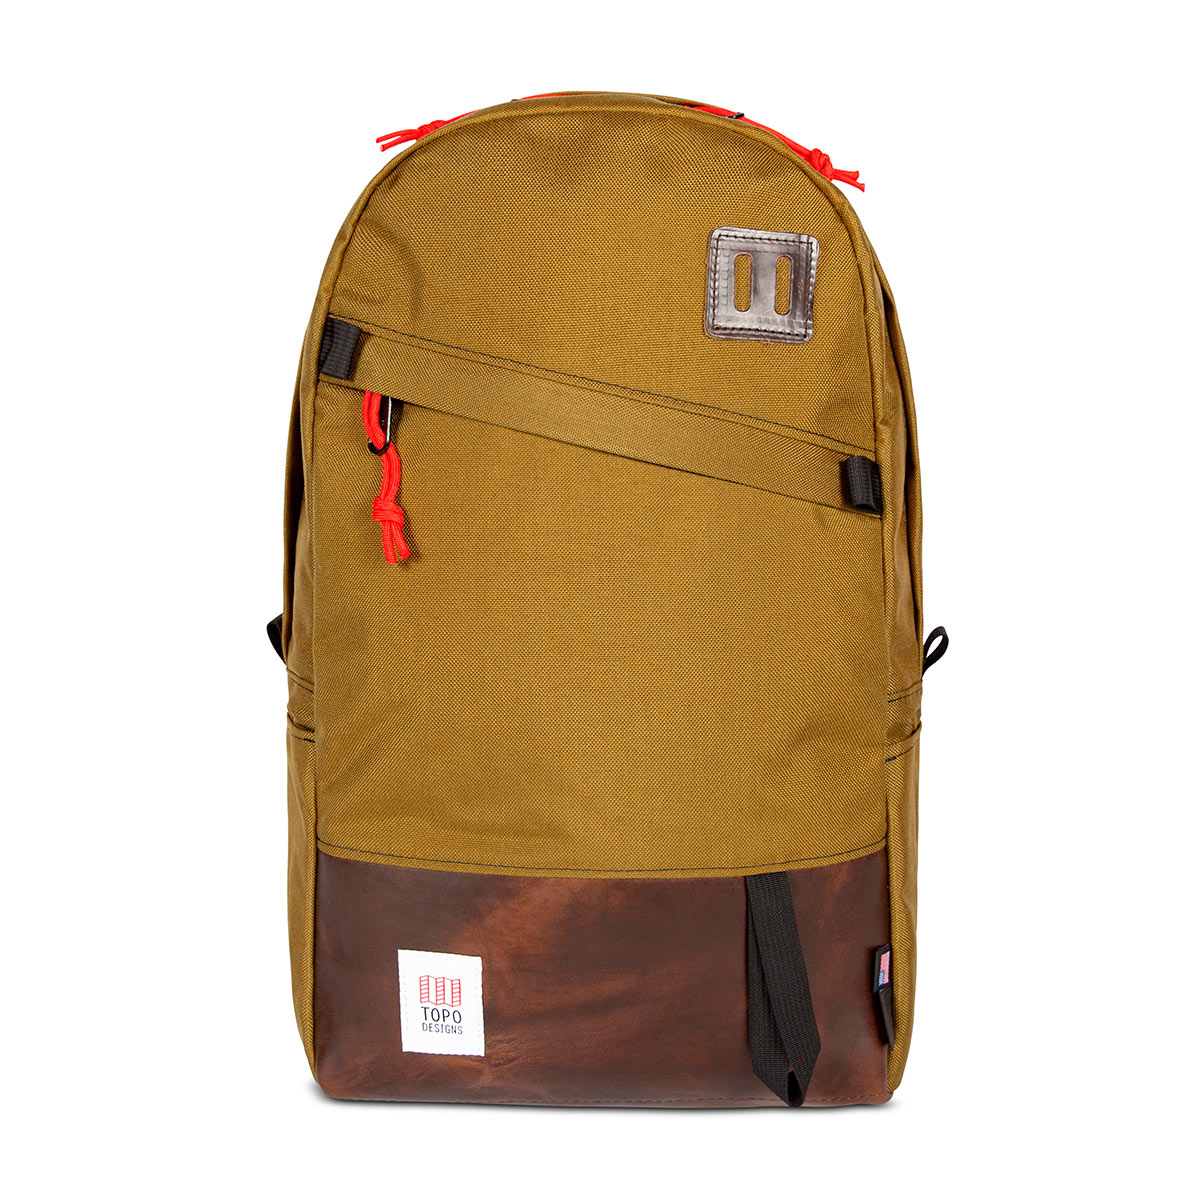 Topo Designs Daypack Duck Brown/Dark Brown Leather starker Rucksack in 1000D Cordura mit 15 Zoll Laptopfach